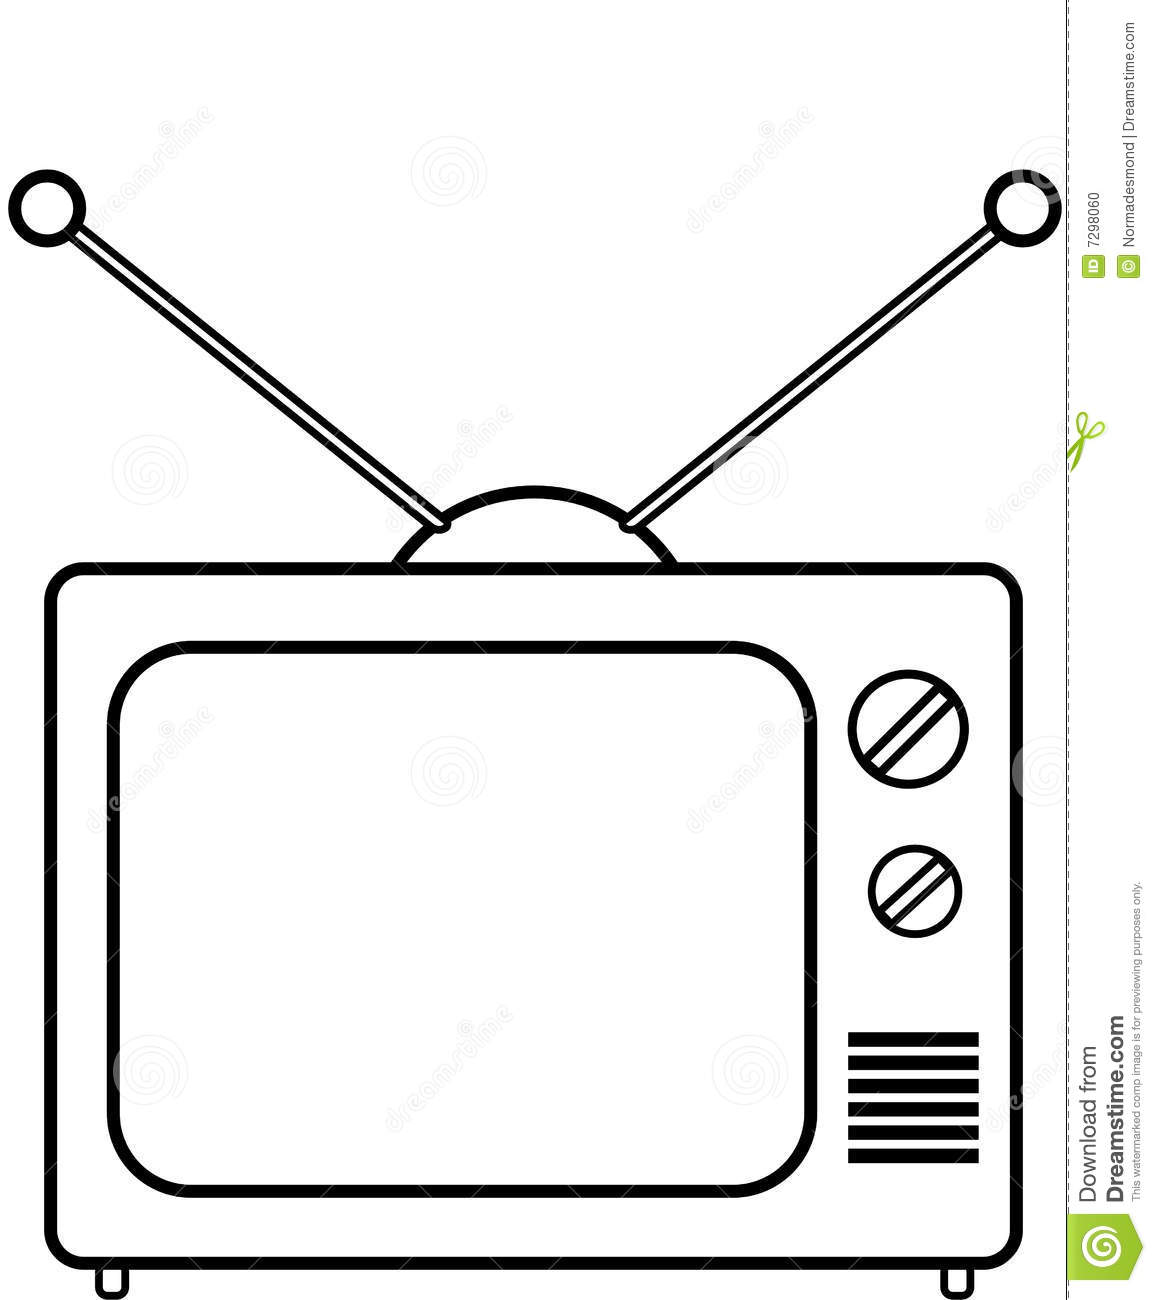 Tv Clipart Colouring Pages 98mcu9 Clipart Kid Television Coloring Page